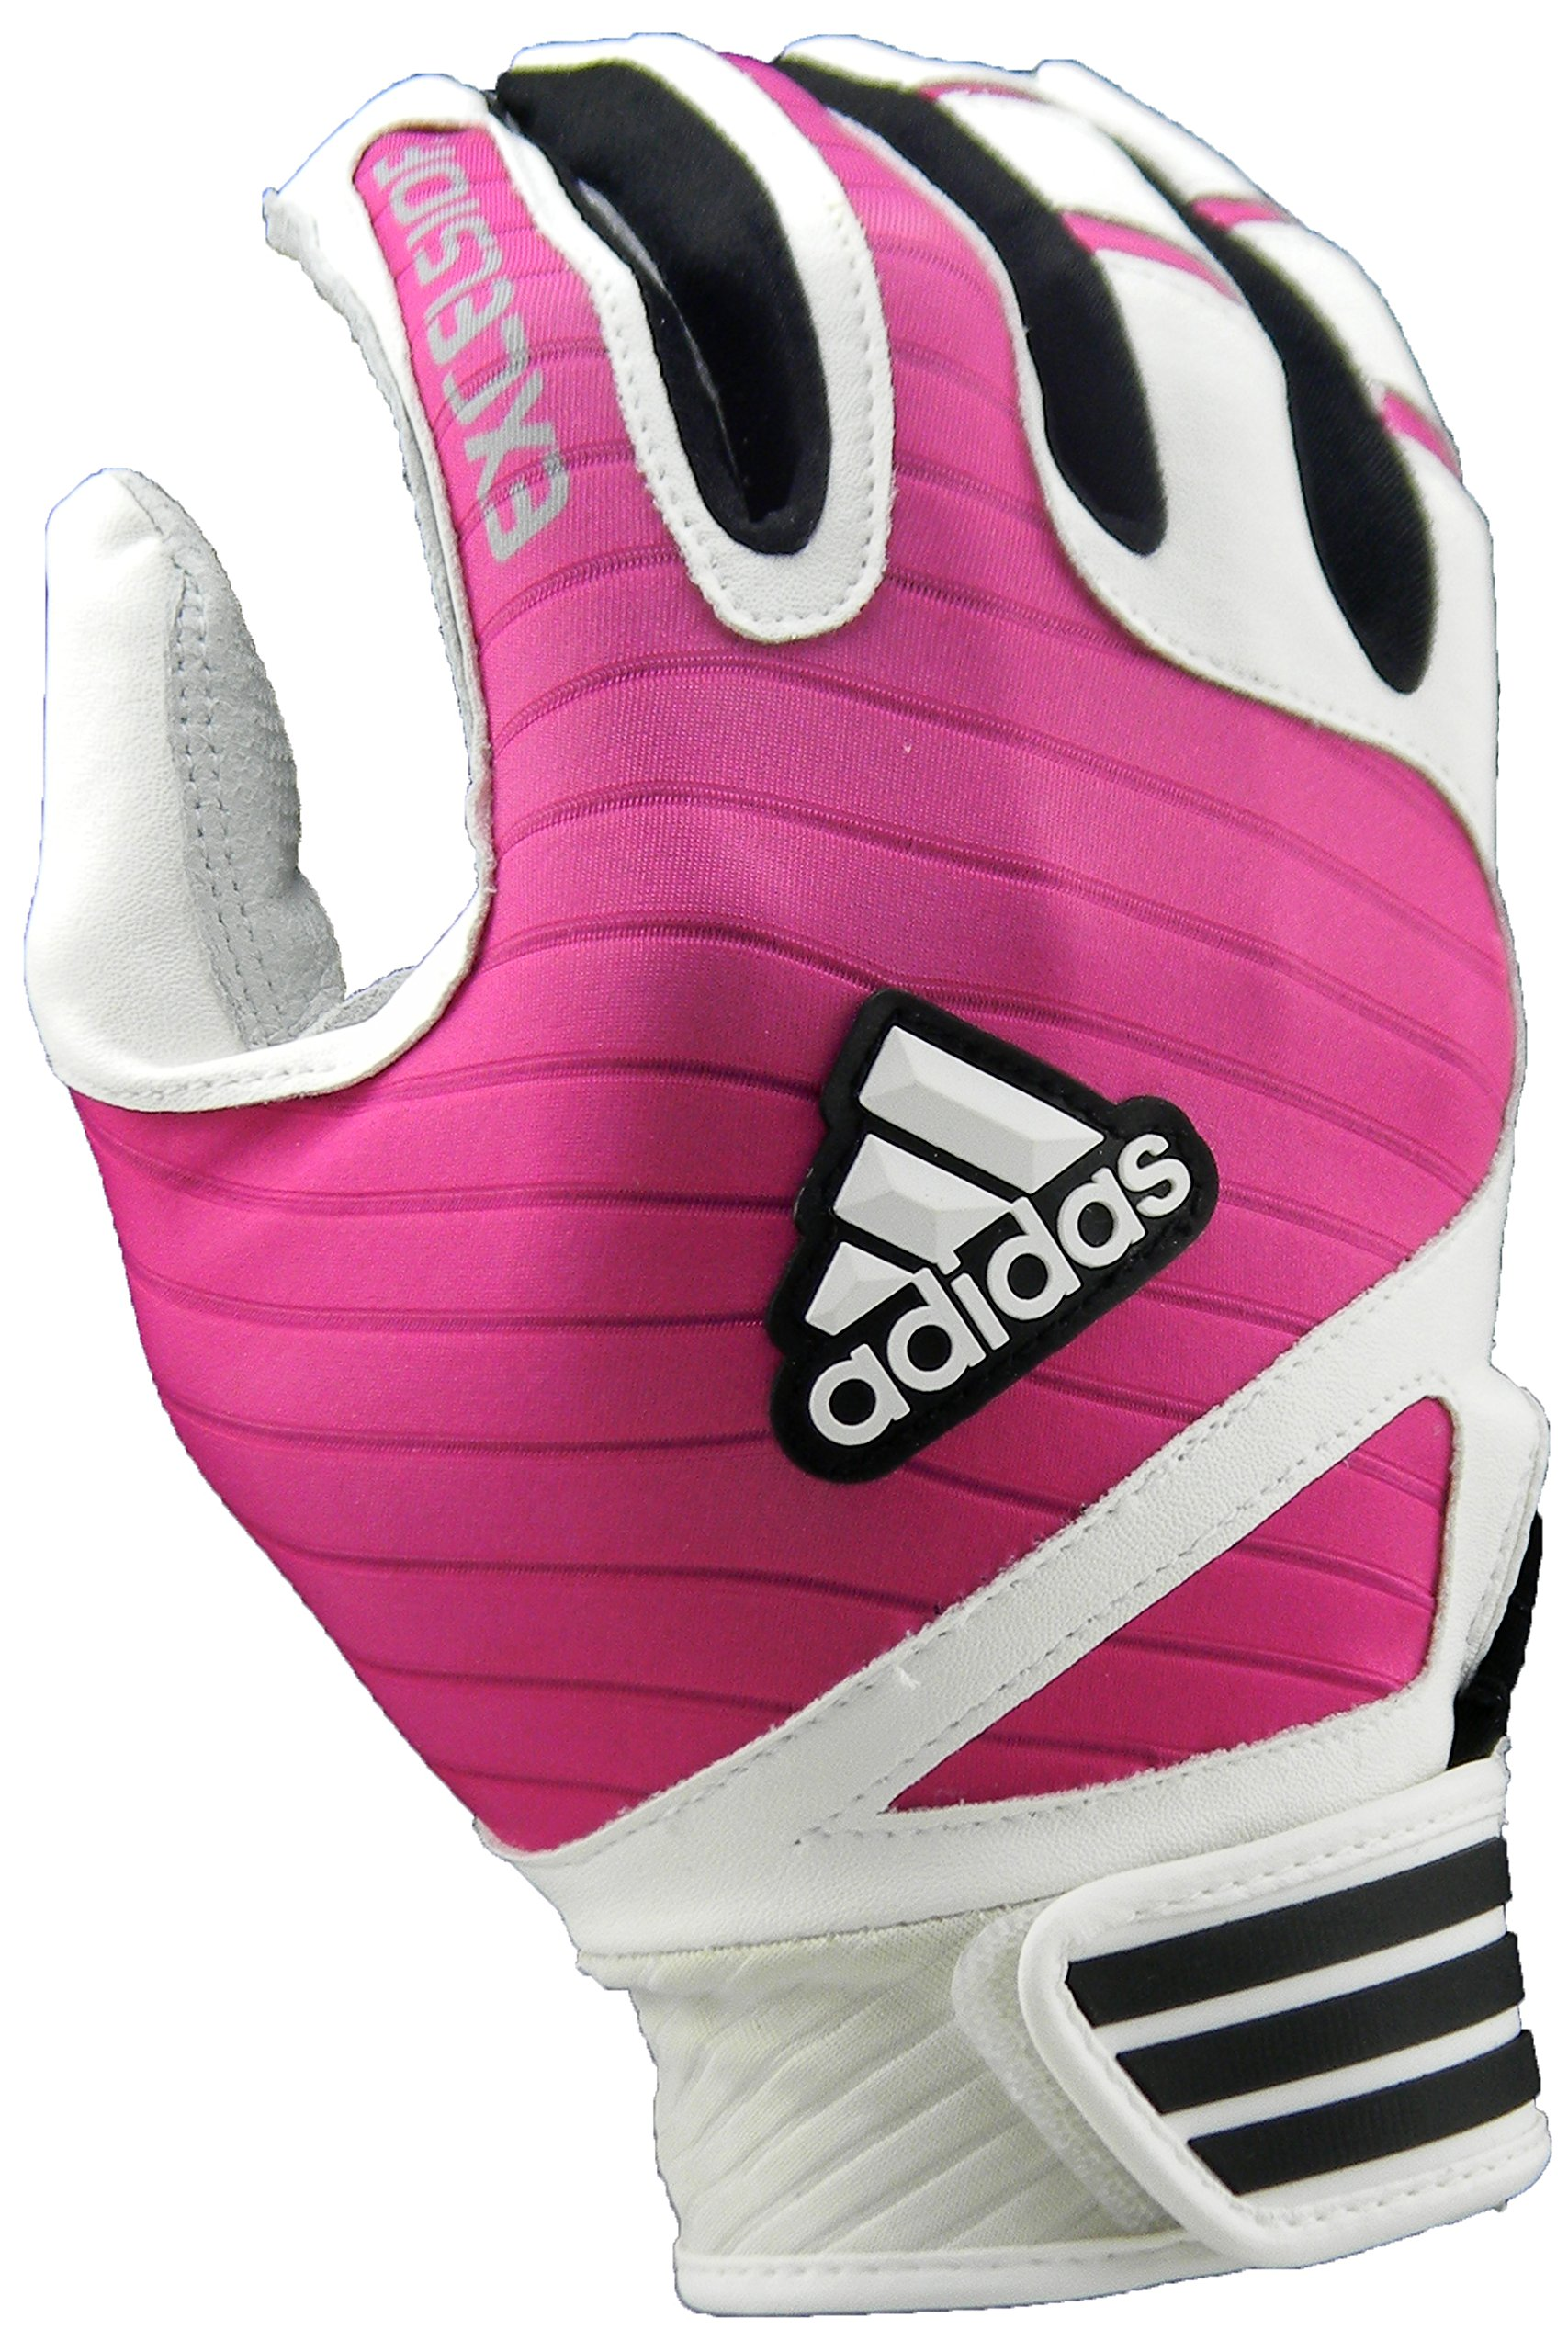 adidas Excelsior Batting Gloves (Pair), White/Pink, Small